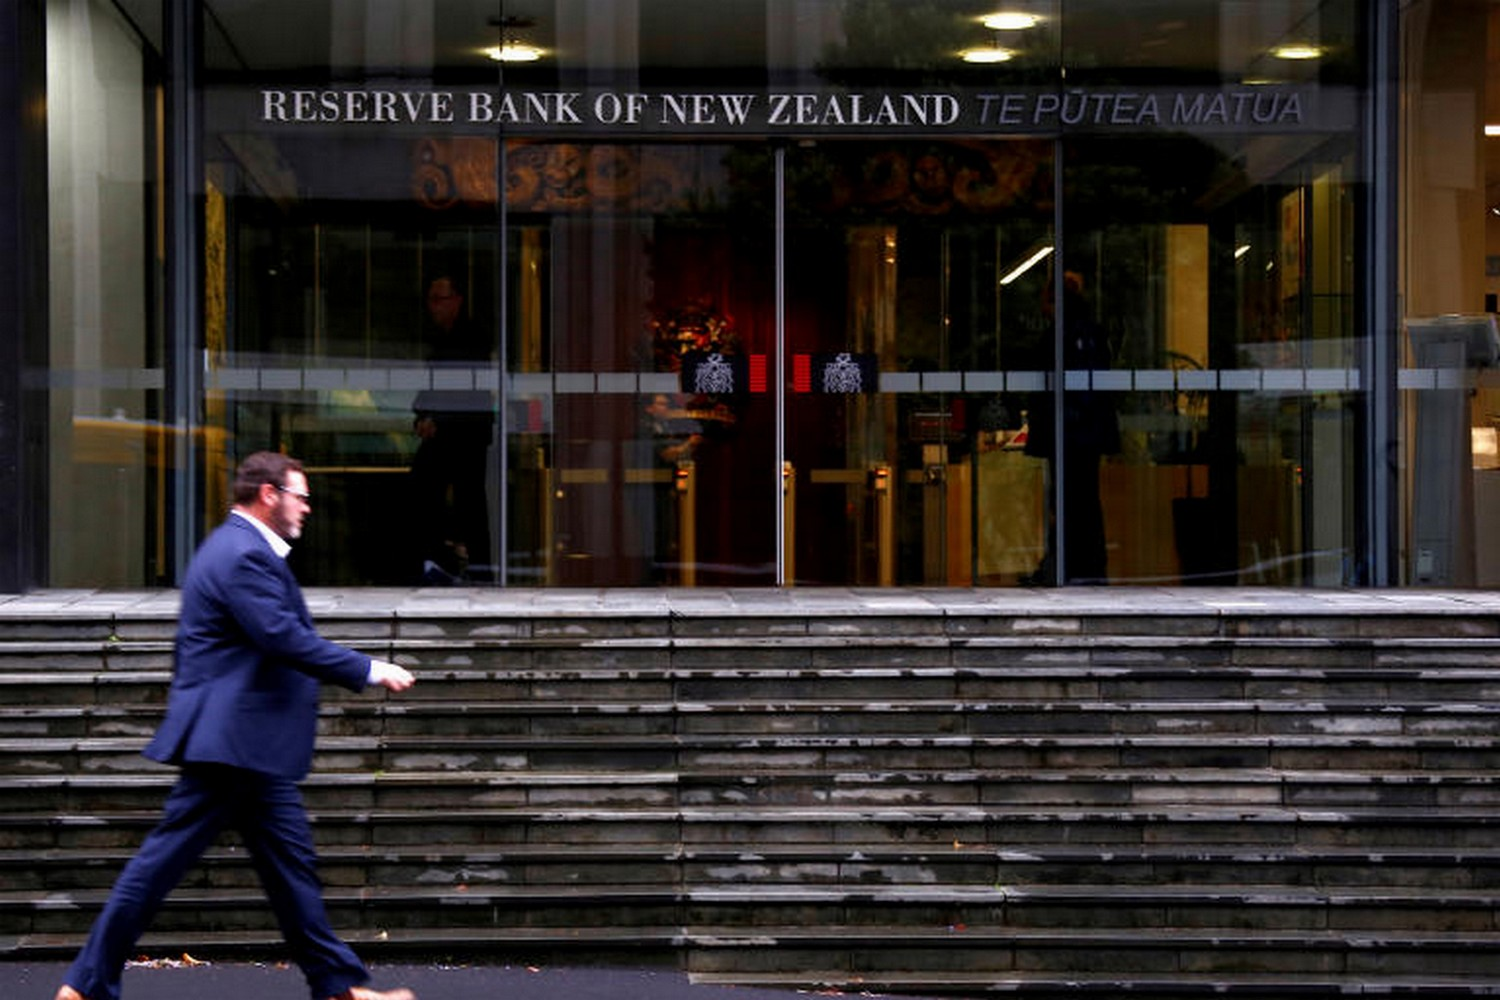 RBNZ chief says negative interest rates